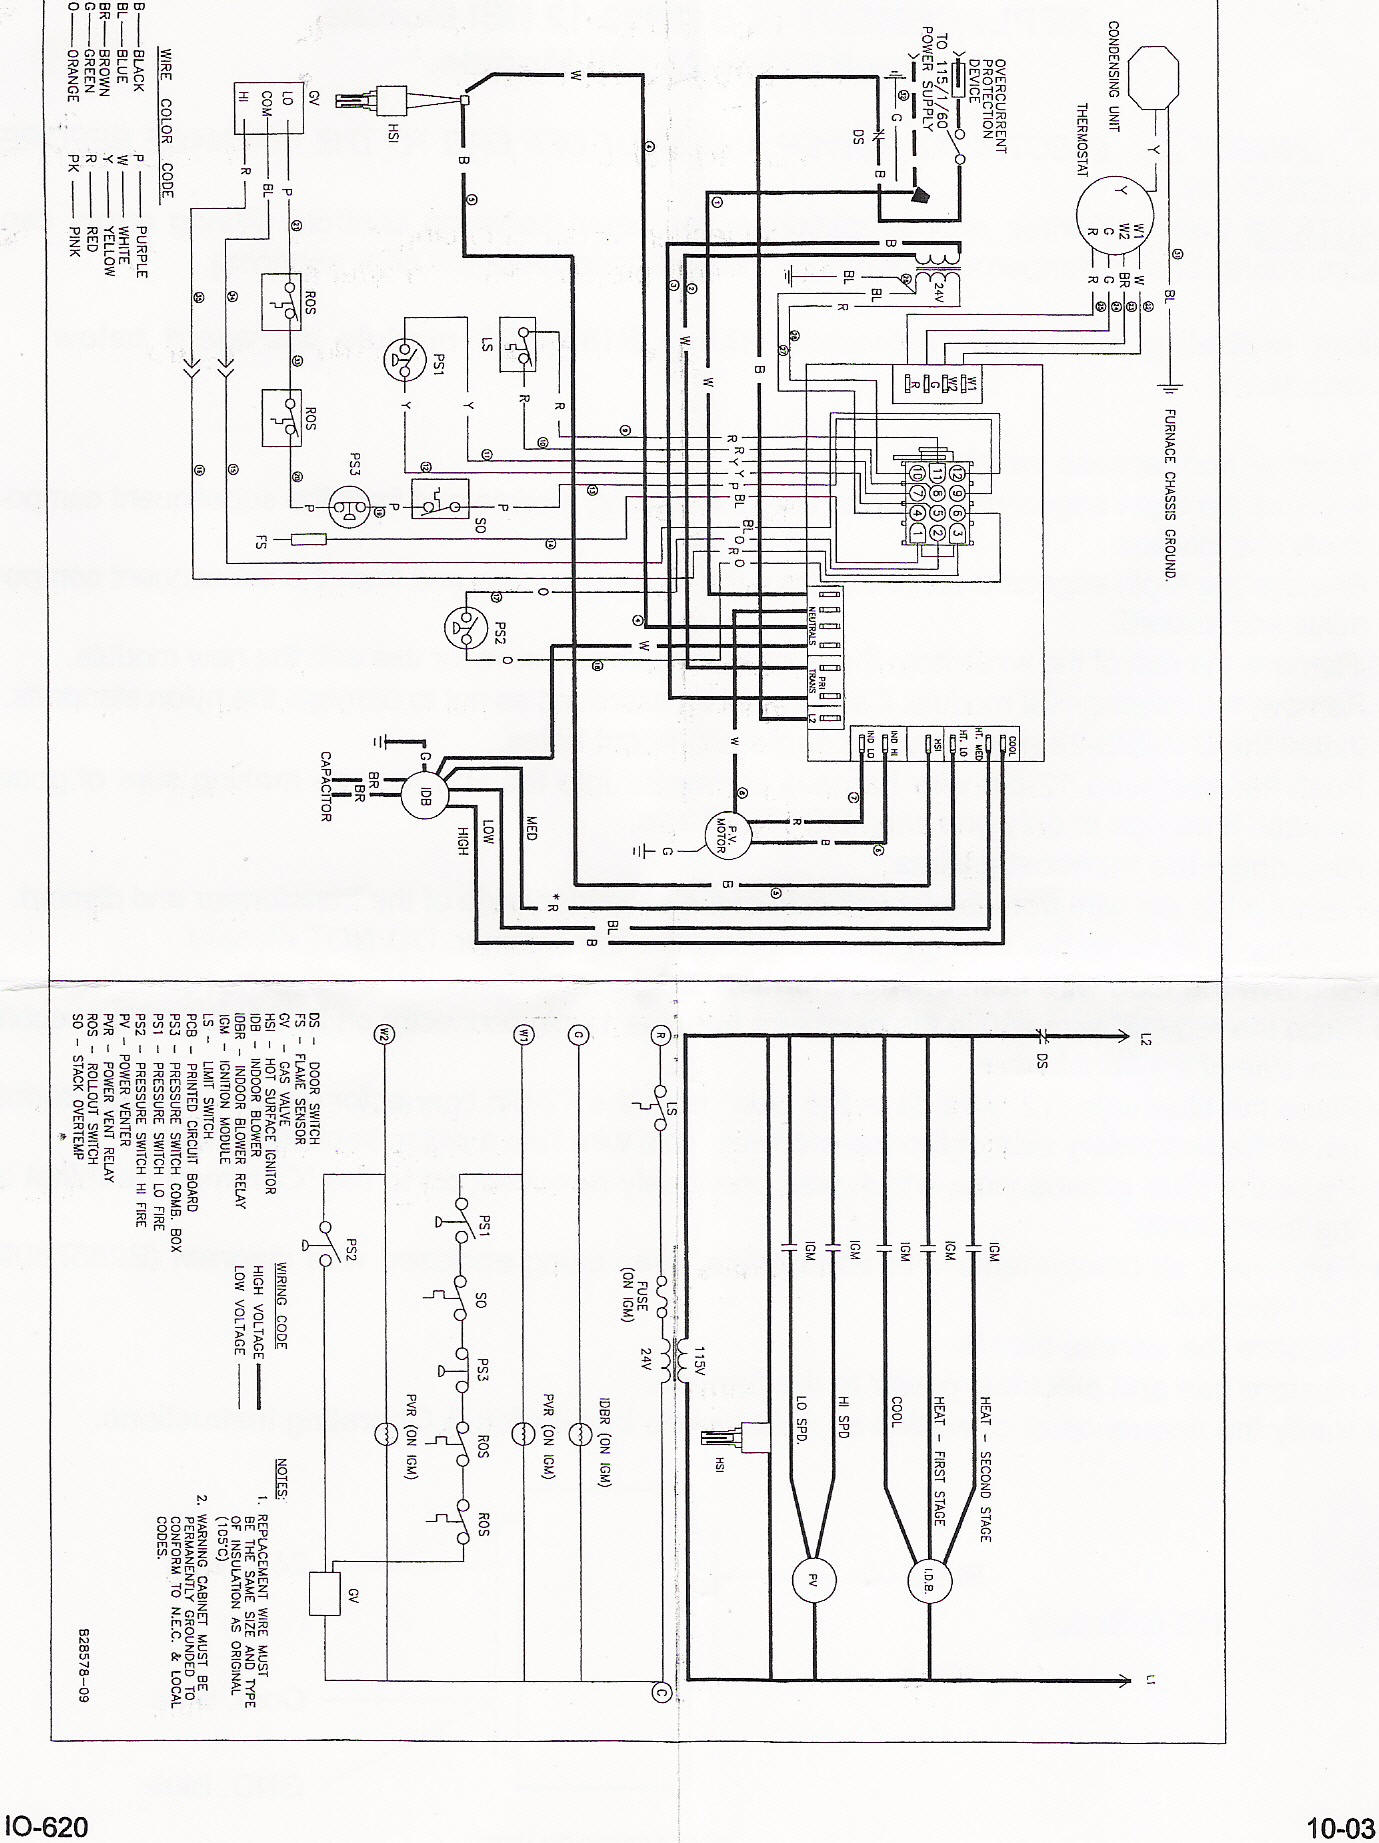 goodma2 instr goodman control board b18099 23 instructions Basic Electrical Wiring Diagrams at cos-gaming.co